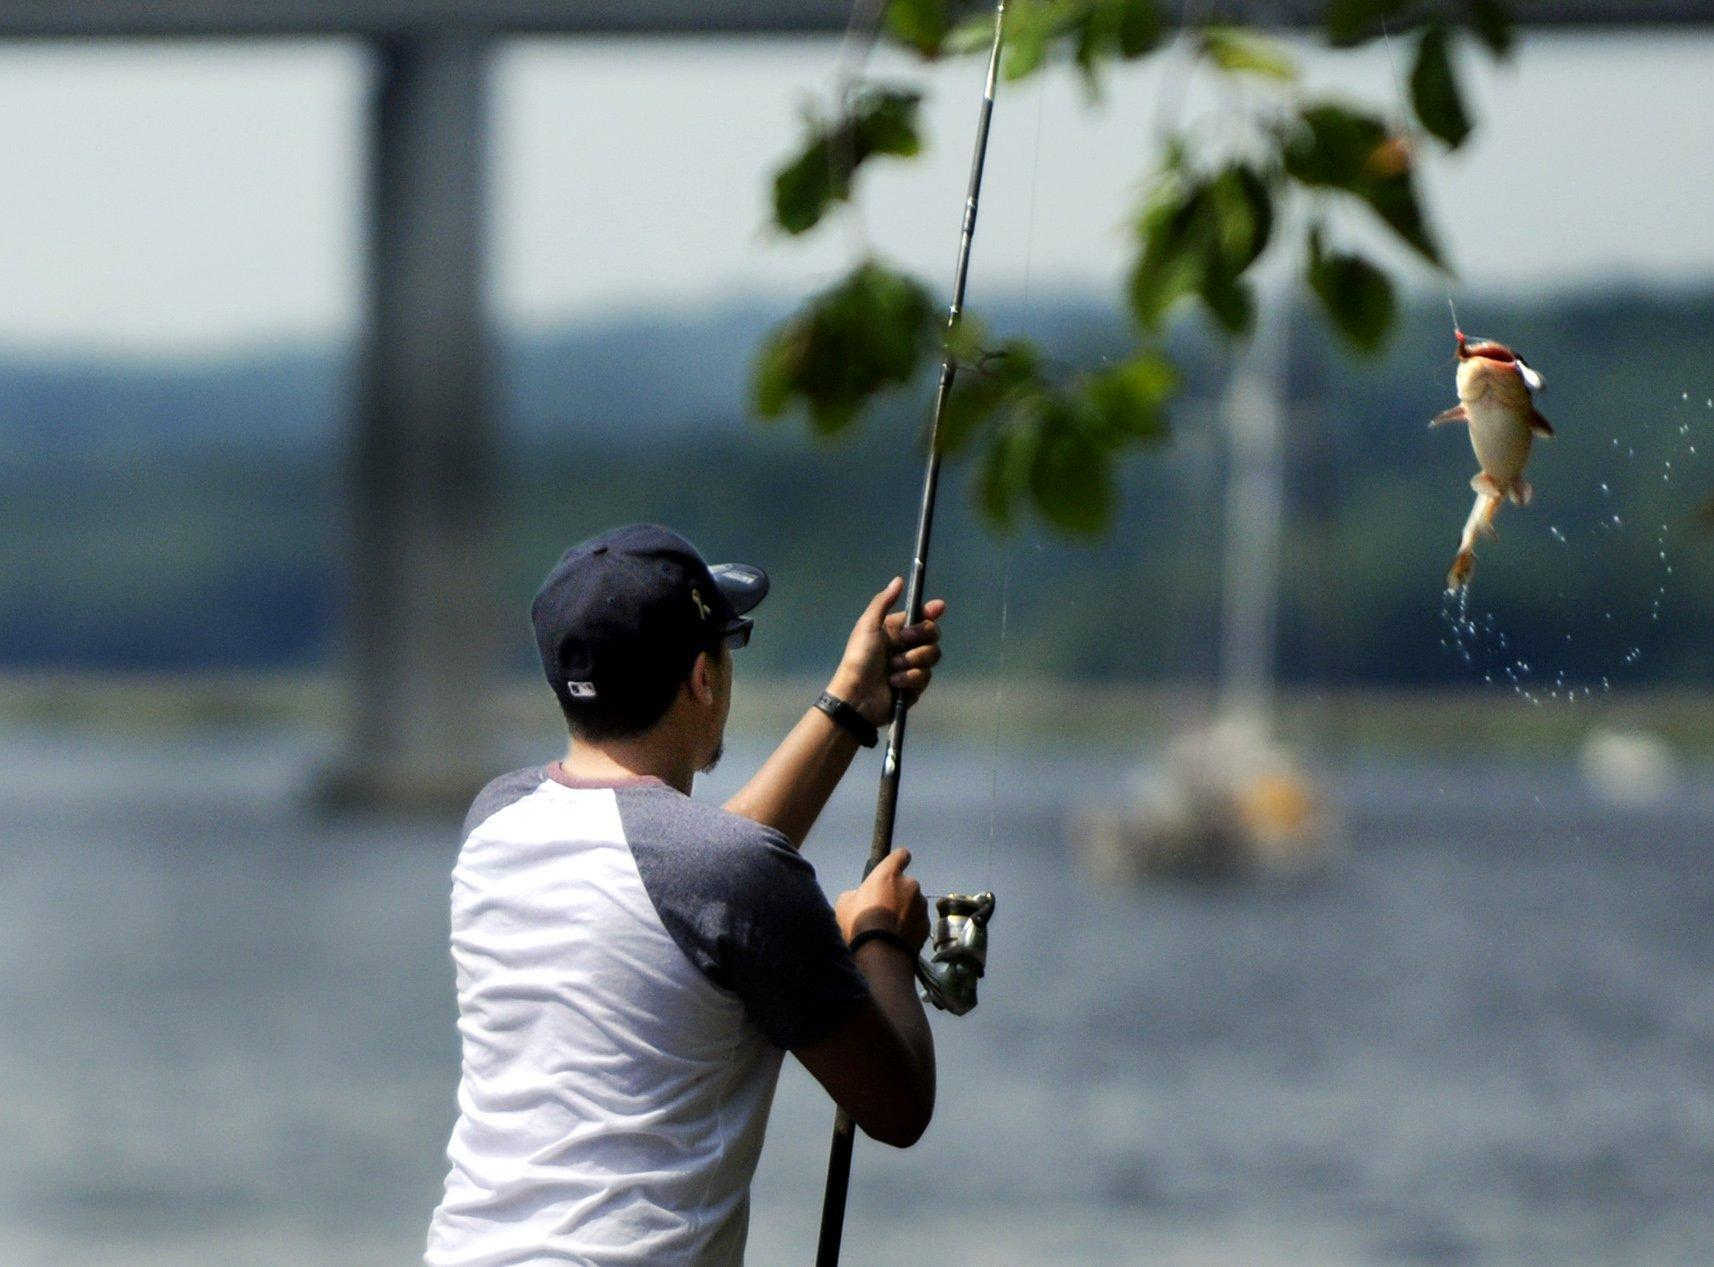 For A Small State Connecticut Rich In Fishing Spots